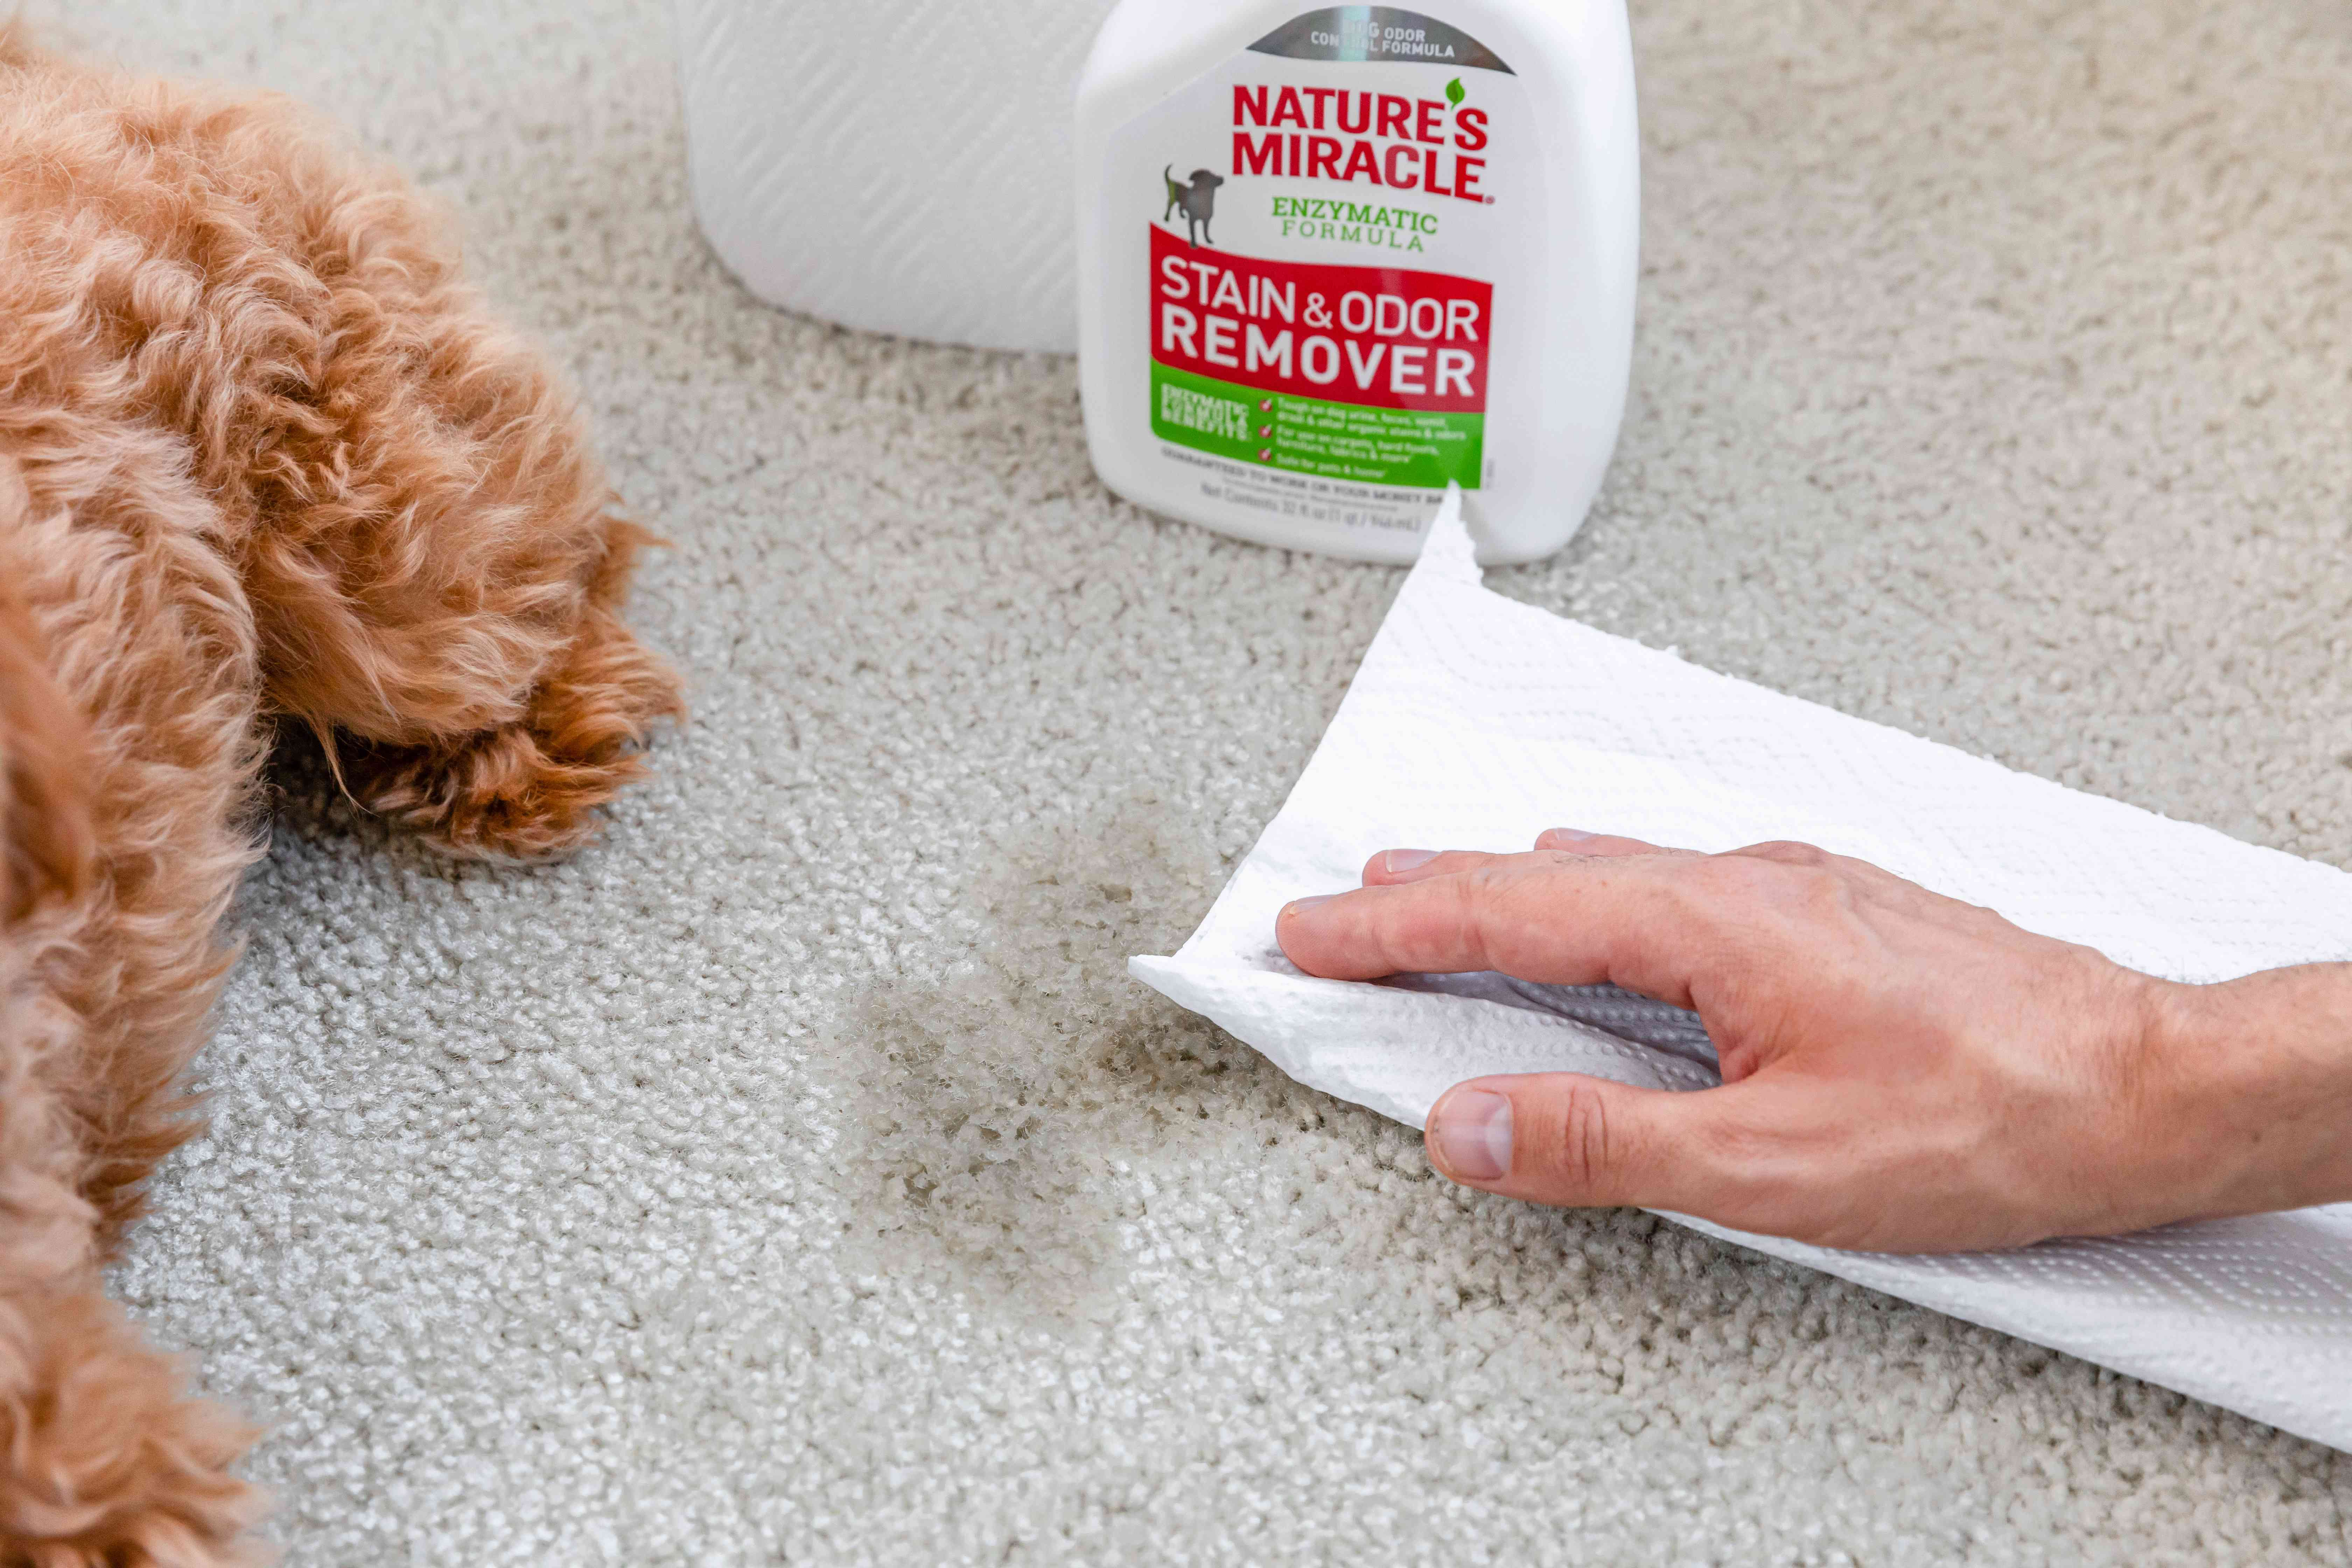 Paper towel blotting pee stain next to stain and odor remover bottle and brown-haired puppy